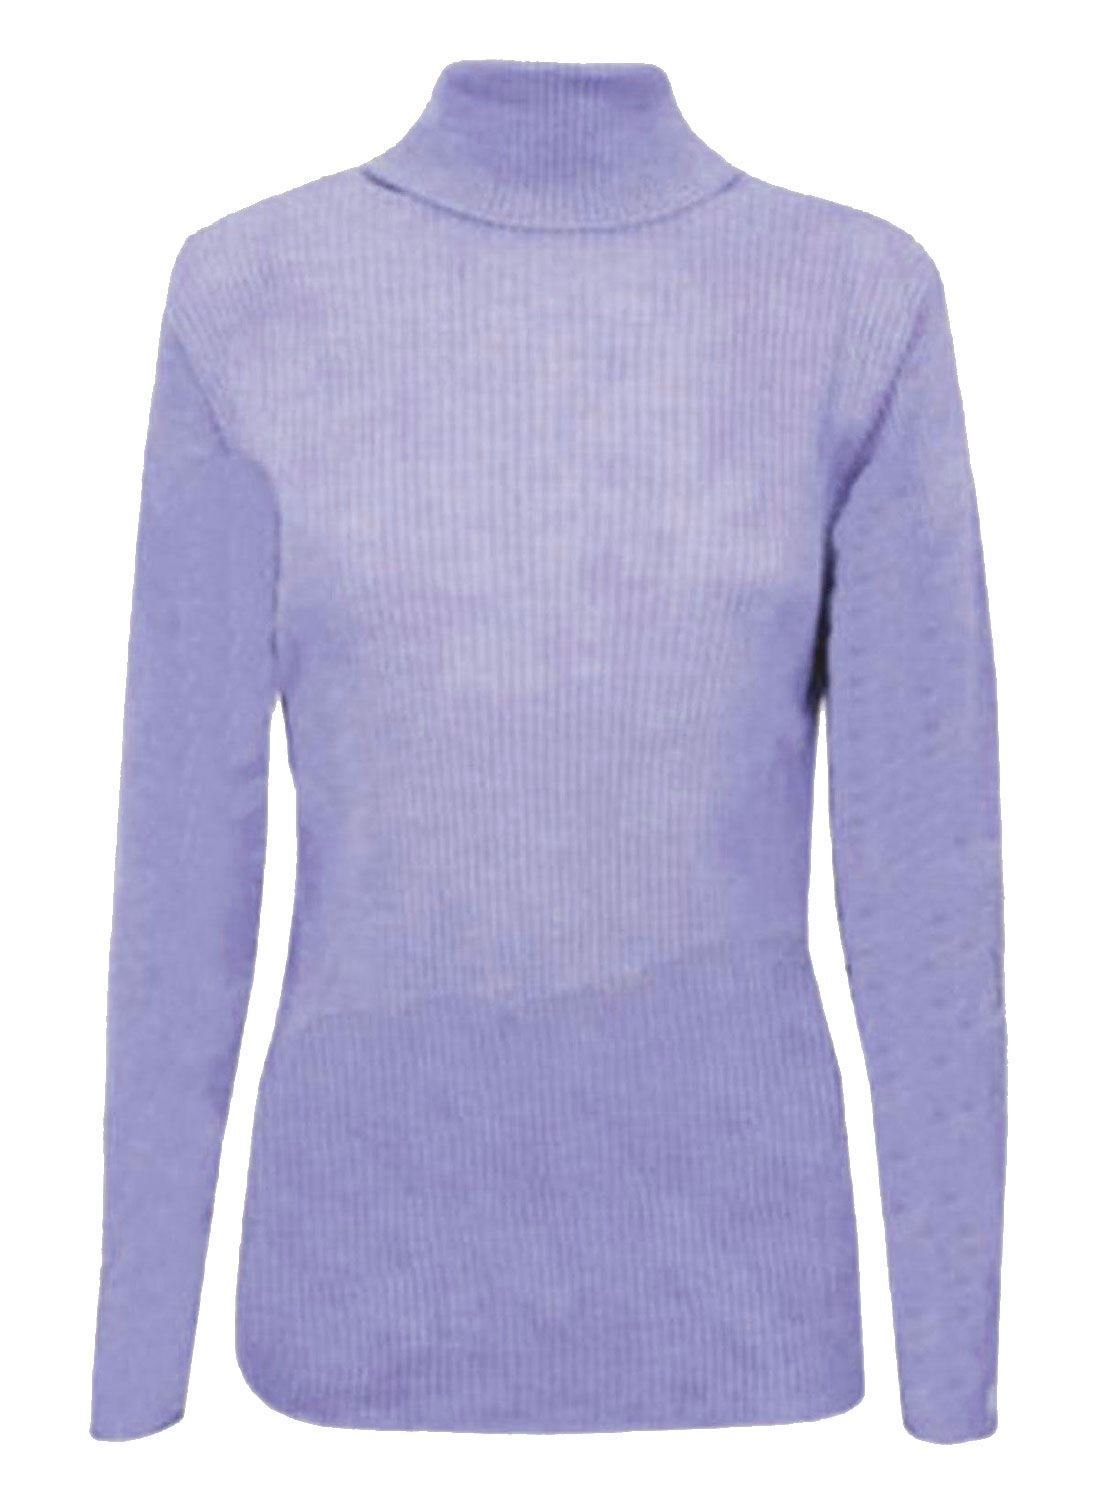 REAL LIFE FASHION LTD Womens Polo Turtle Neck Ribbed Jumper Top Ladies Full Sleeve Stretch Jumper Top#(Lilac Ribbed Polo Neck Jumper#US 12#Womens)